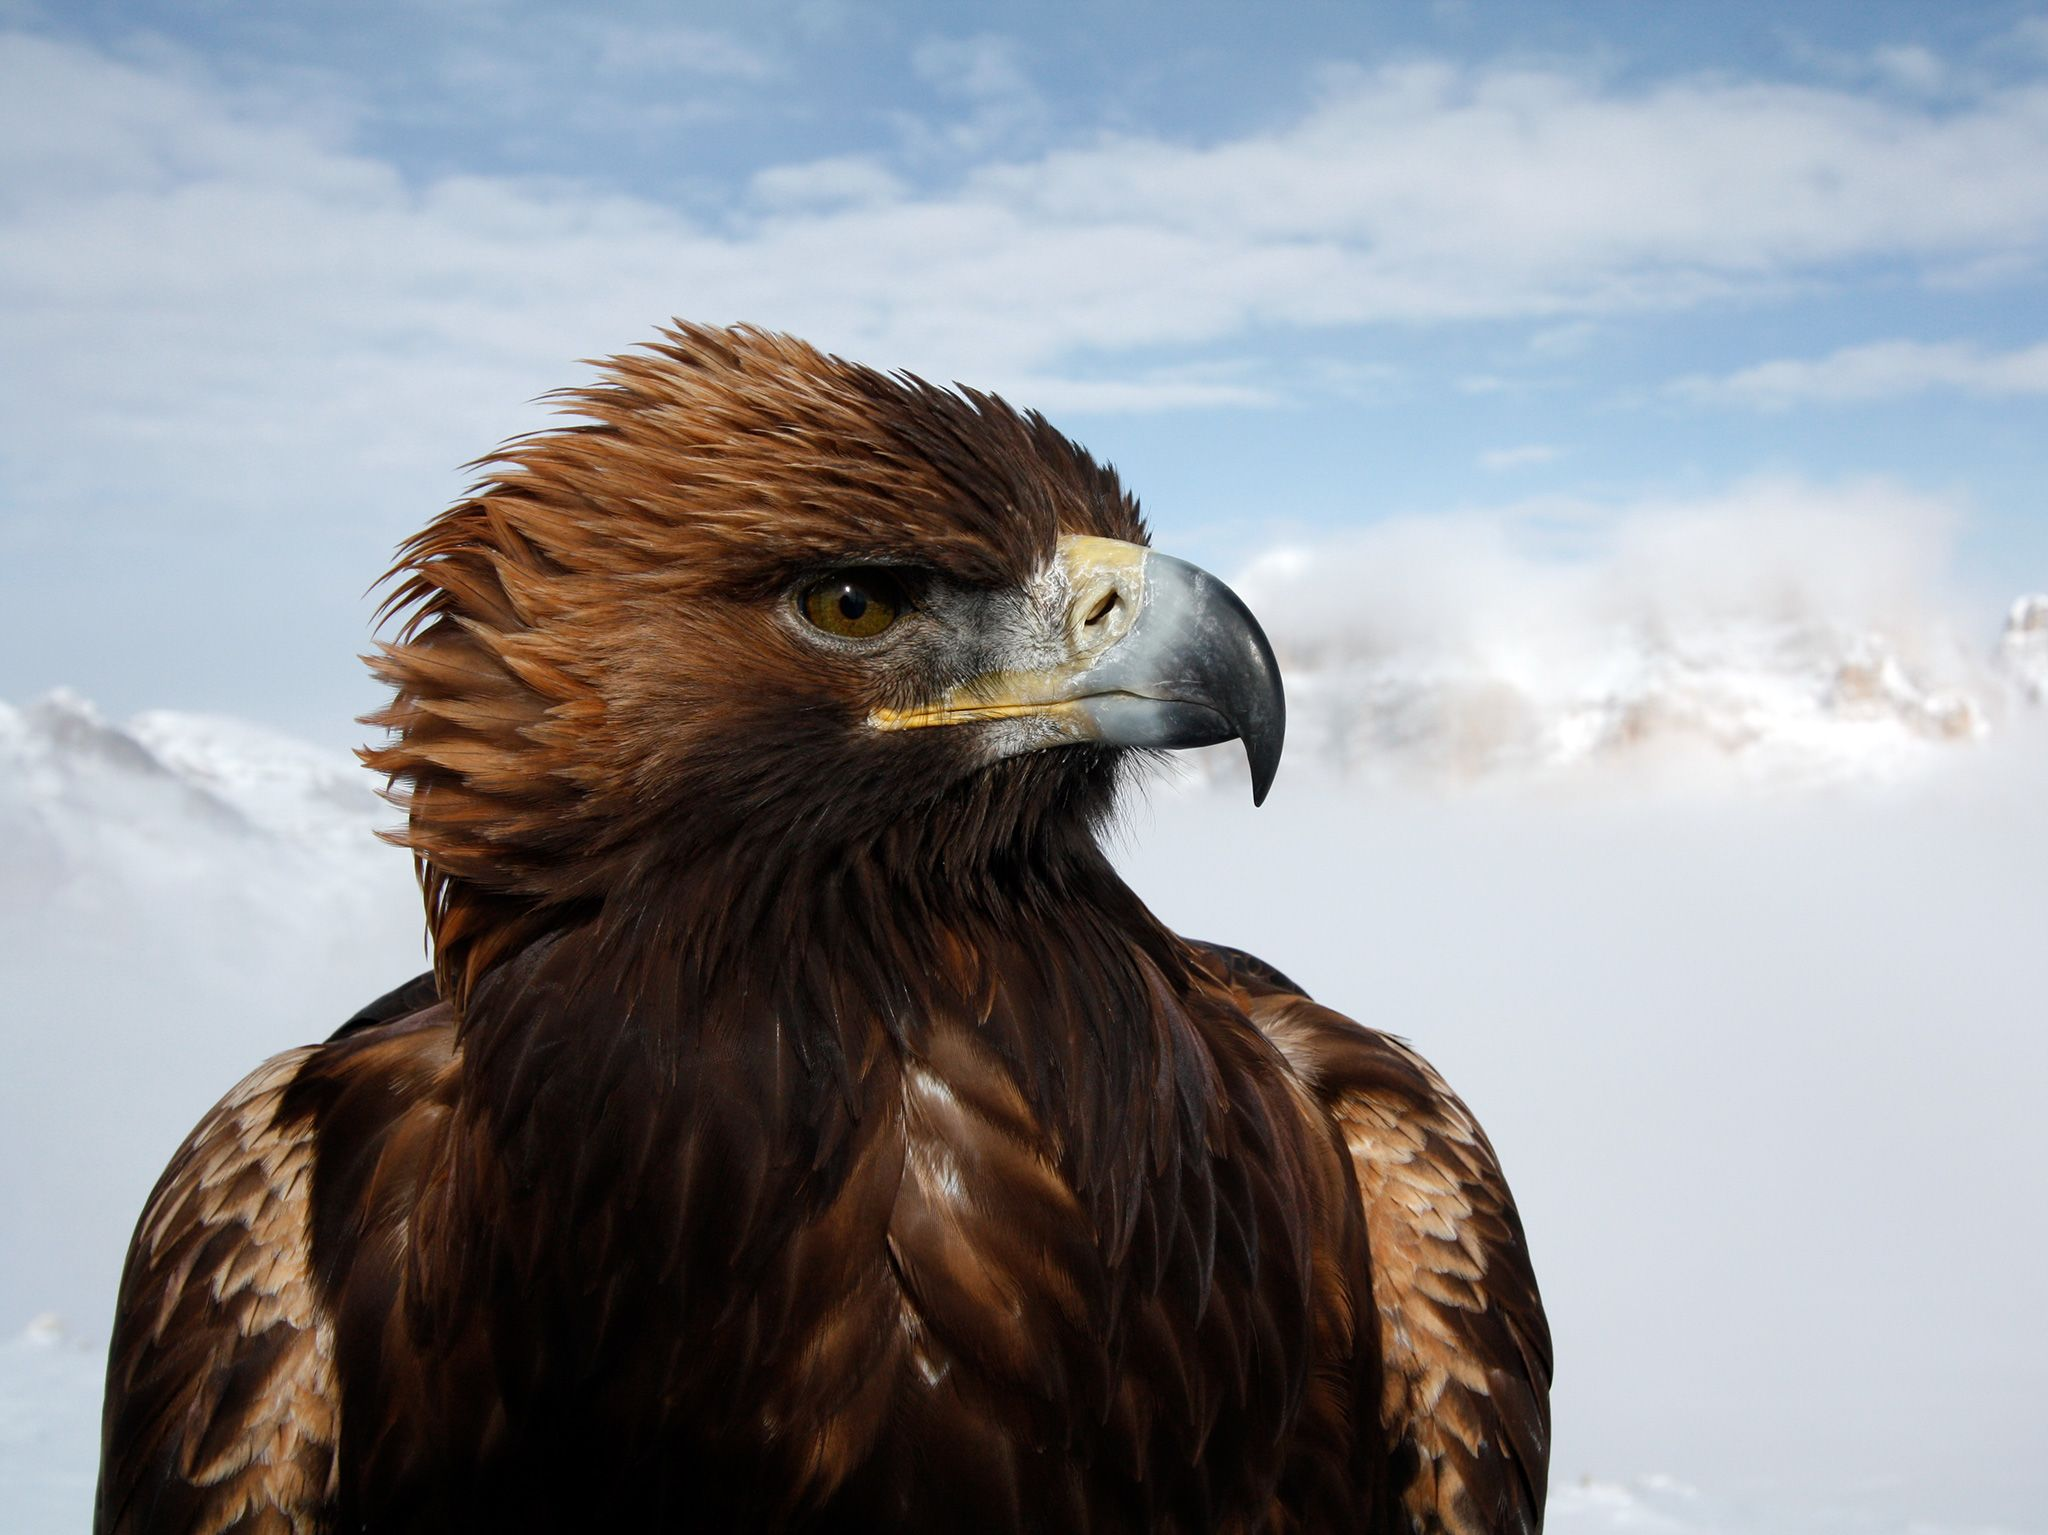 Dolomites, Italy:  A golden eagle.  For golden eagles in the higher latitudes of the planet,... [Foto del giorno - aprile 2019]